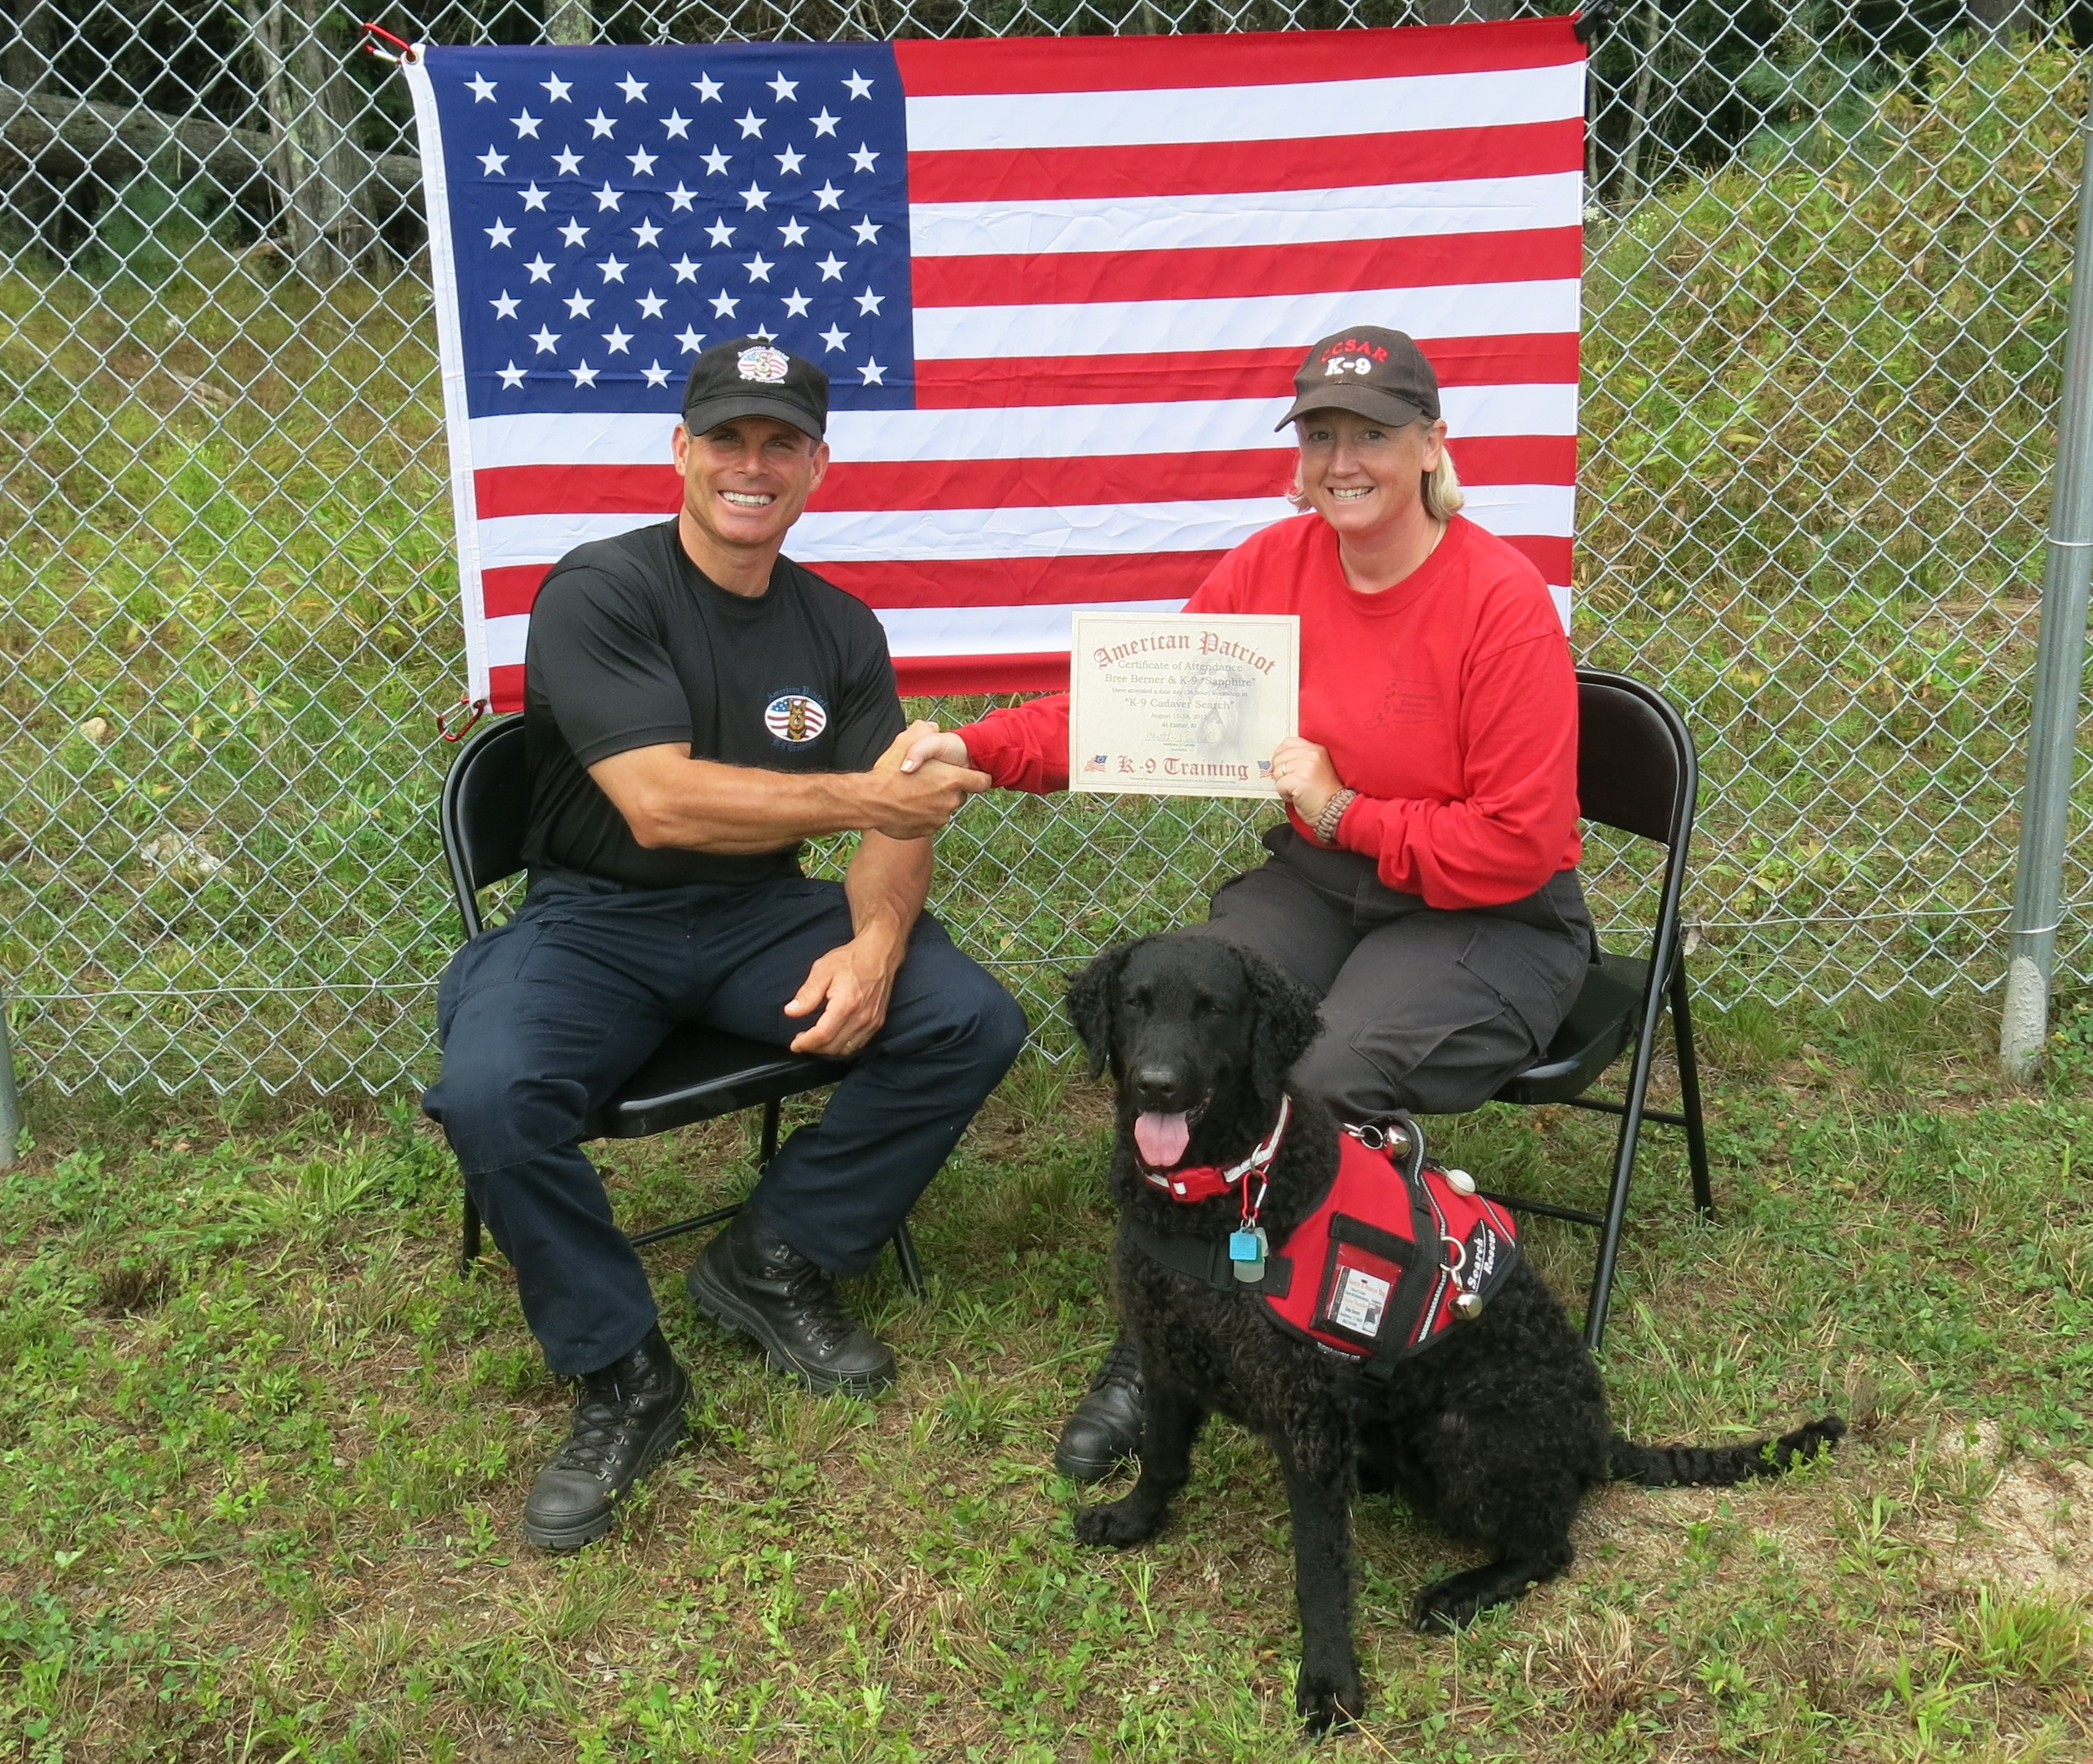 "Dedicated to ""Team Sapphire"" - Connecticut Canine Search and Rescue    - Bree Berner and Sapphire the Curly Coated Retriever        Normal   0           false   false   false     EN-US   X-NONE   X-NONE                                                                                                                                                                                                                                                                                                                                                                           /* Style Definitions */  table.MsoNormalTable 	{mso-style-name:""Table Normal""; 	mso-tstyle-rowband-size:0; 	mso-tstyle-colband-size:0; 	mso-style-noshow:yes; 	mso-style-priority:99; 	mso-style-parent:""""; 	mso-padding-alt:0in 5.4pt 0in 5.4pt; 	mso-para-margin-top:0in; 	mso-para-margin-right:0in; 	mso-para-margin-bottom:10.0pt; 	mso-para-margin-left:0in; 	line-height:115%; 	mso-pagination:widow-orphan; 	font-size:11.0pt; 	font-family:""Times New Roman"",""serif"";}"